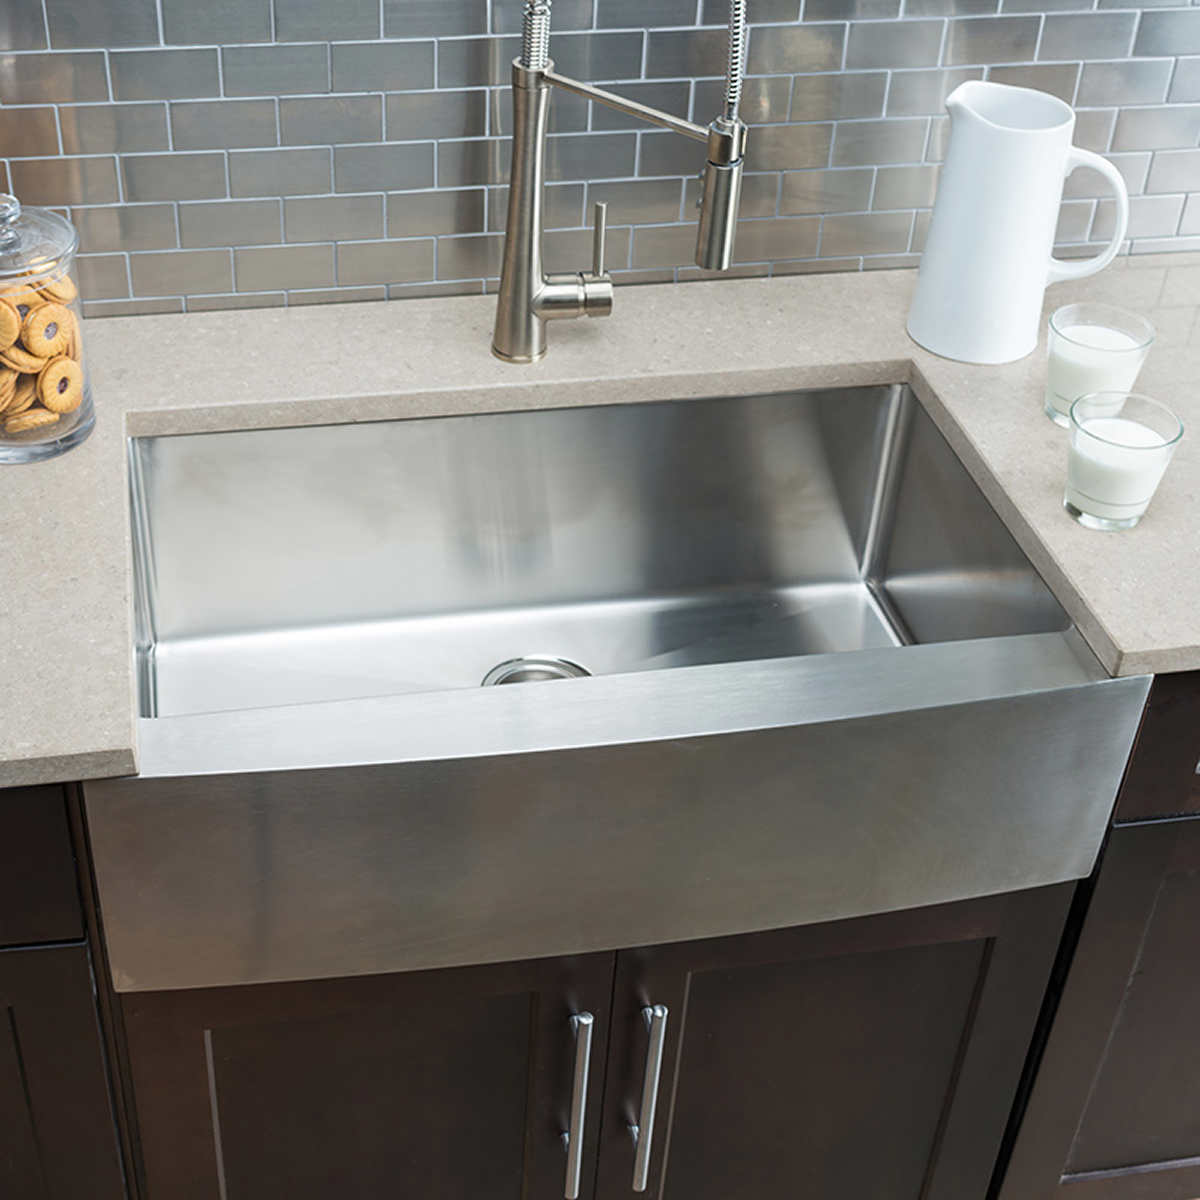 Hahn Chef Series Handmade Large Single Bowl Farmhouse Sink